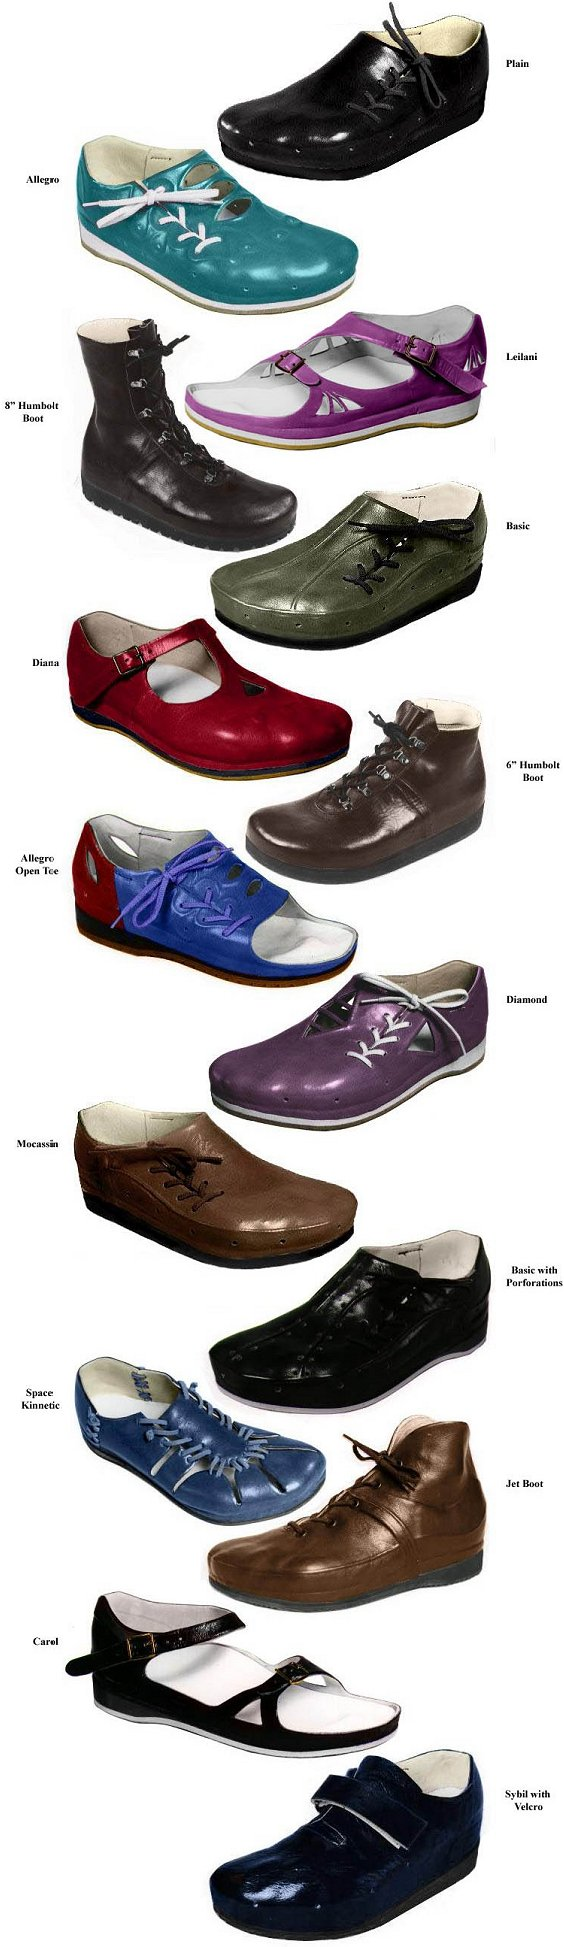 Our most popular shoe styles which include: Plain style, Allegro style, Moccasin style, Leilani style, Basic style, Diana style, BASIC Ventilated style, Carol style, HUMBOLD Low style, Space Kinetic Shoe -- Murrays Space Shoe style, Jet Boot style, Humboldt Boot High style.